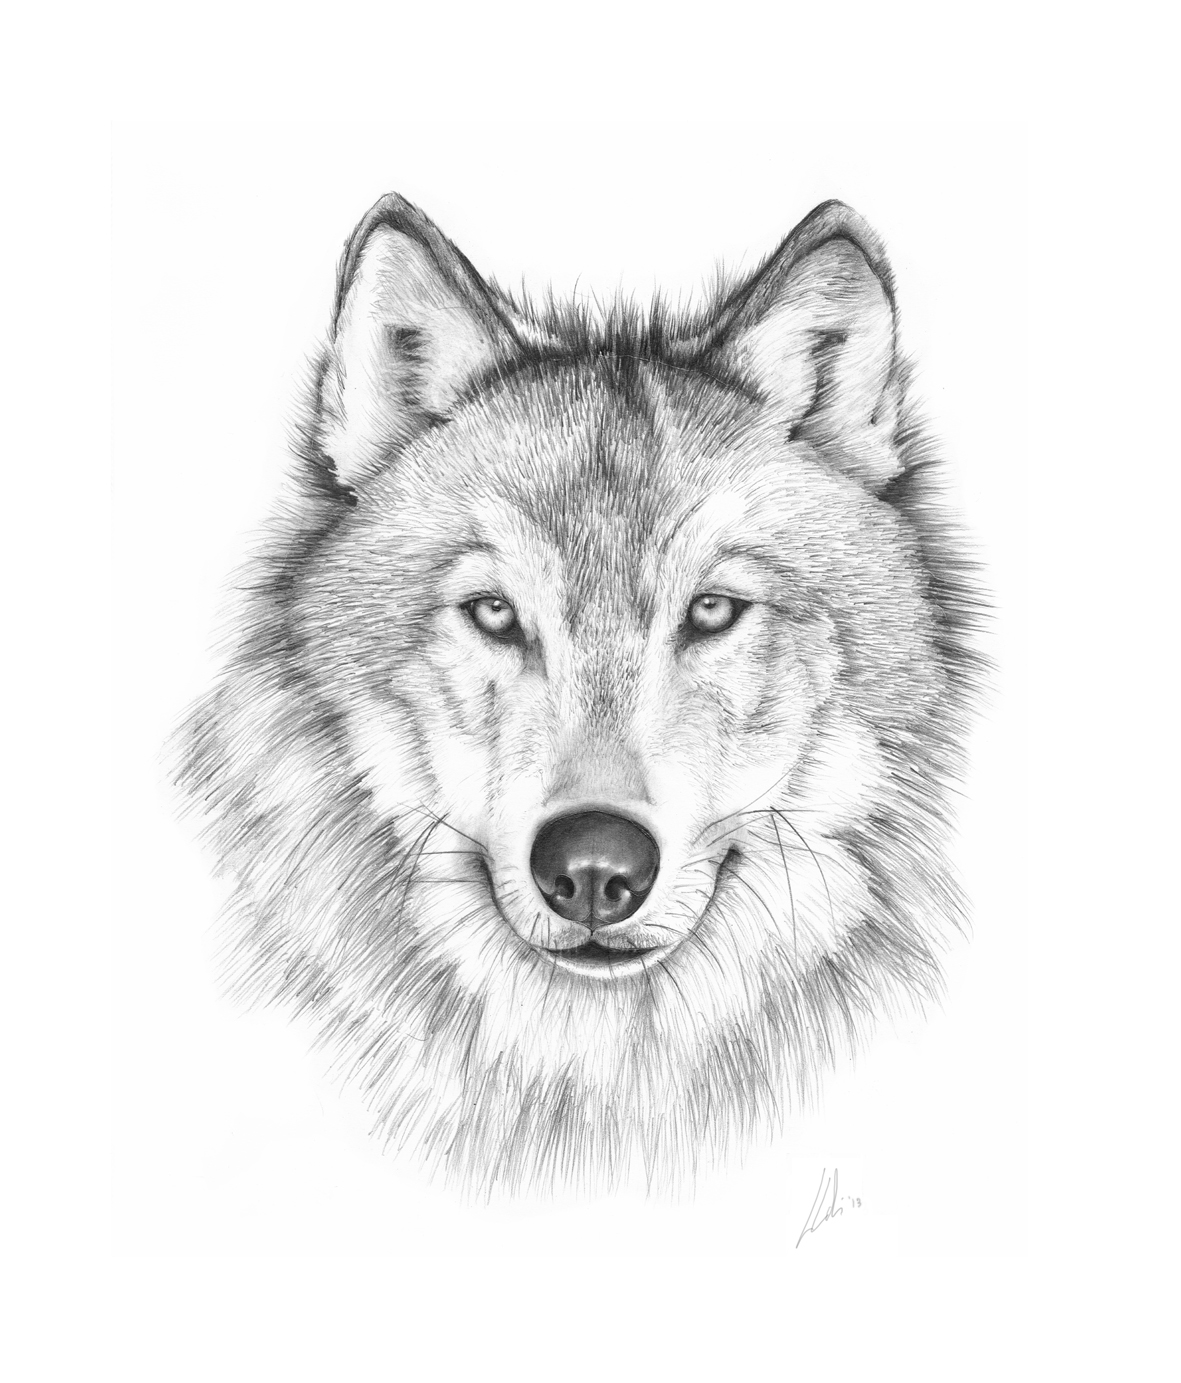 Drawn amd wolf On synopsis wolves Pin wolf!